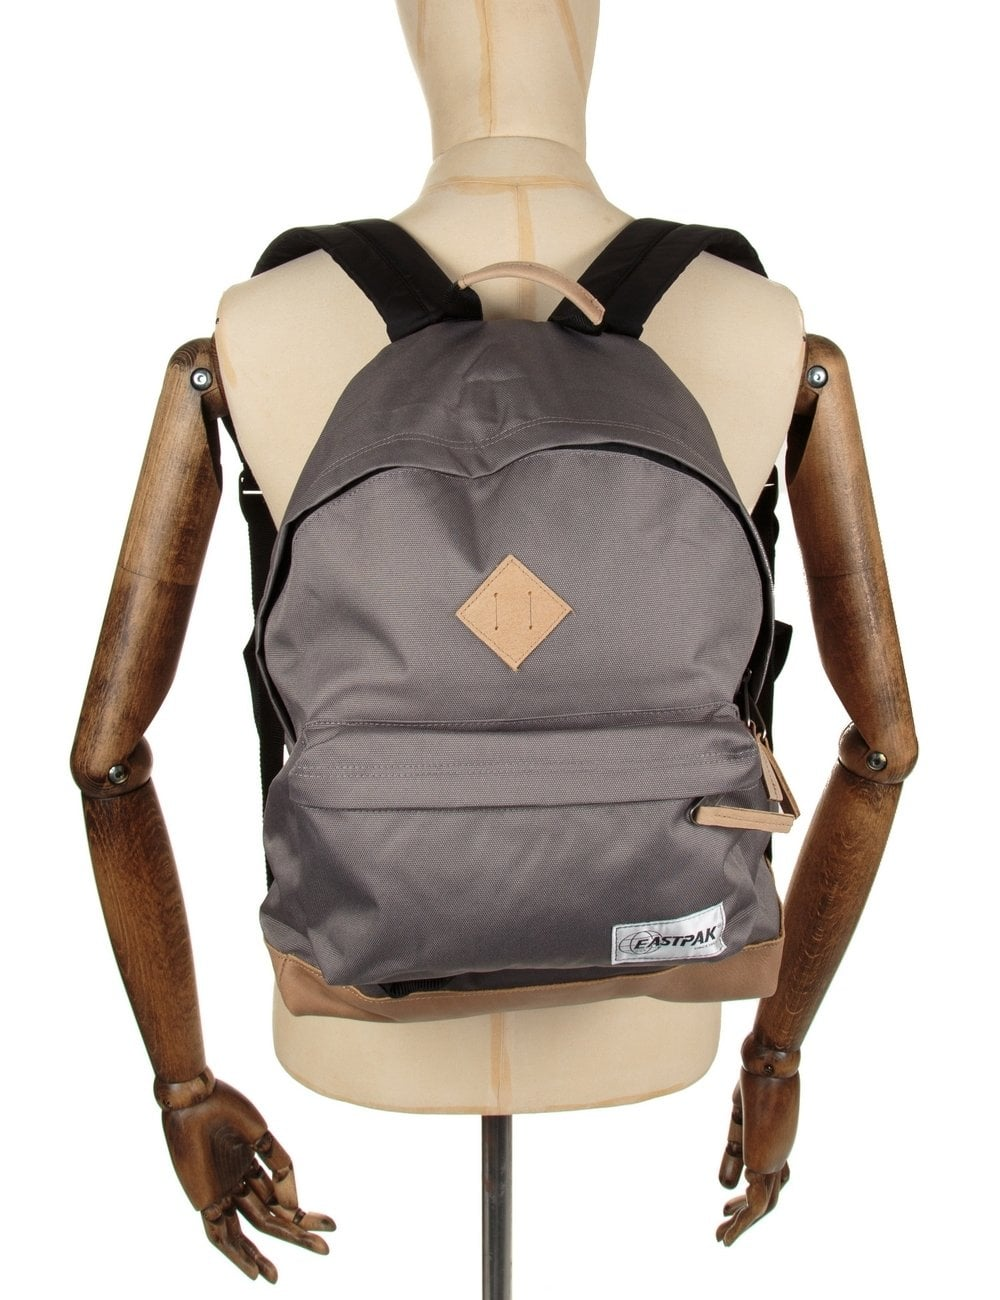 2aacff27e Eastpak Wyoming Backpack - Into the out Grey - Accessories from Fat ...